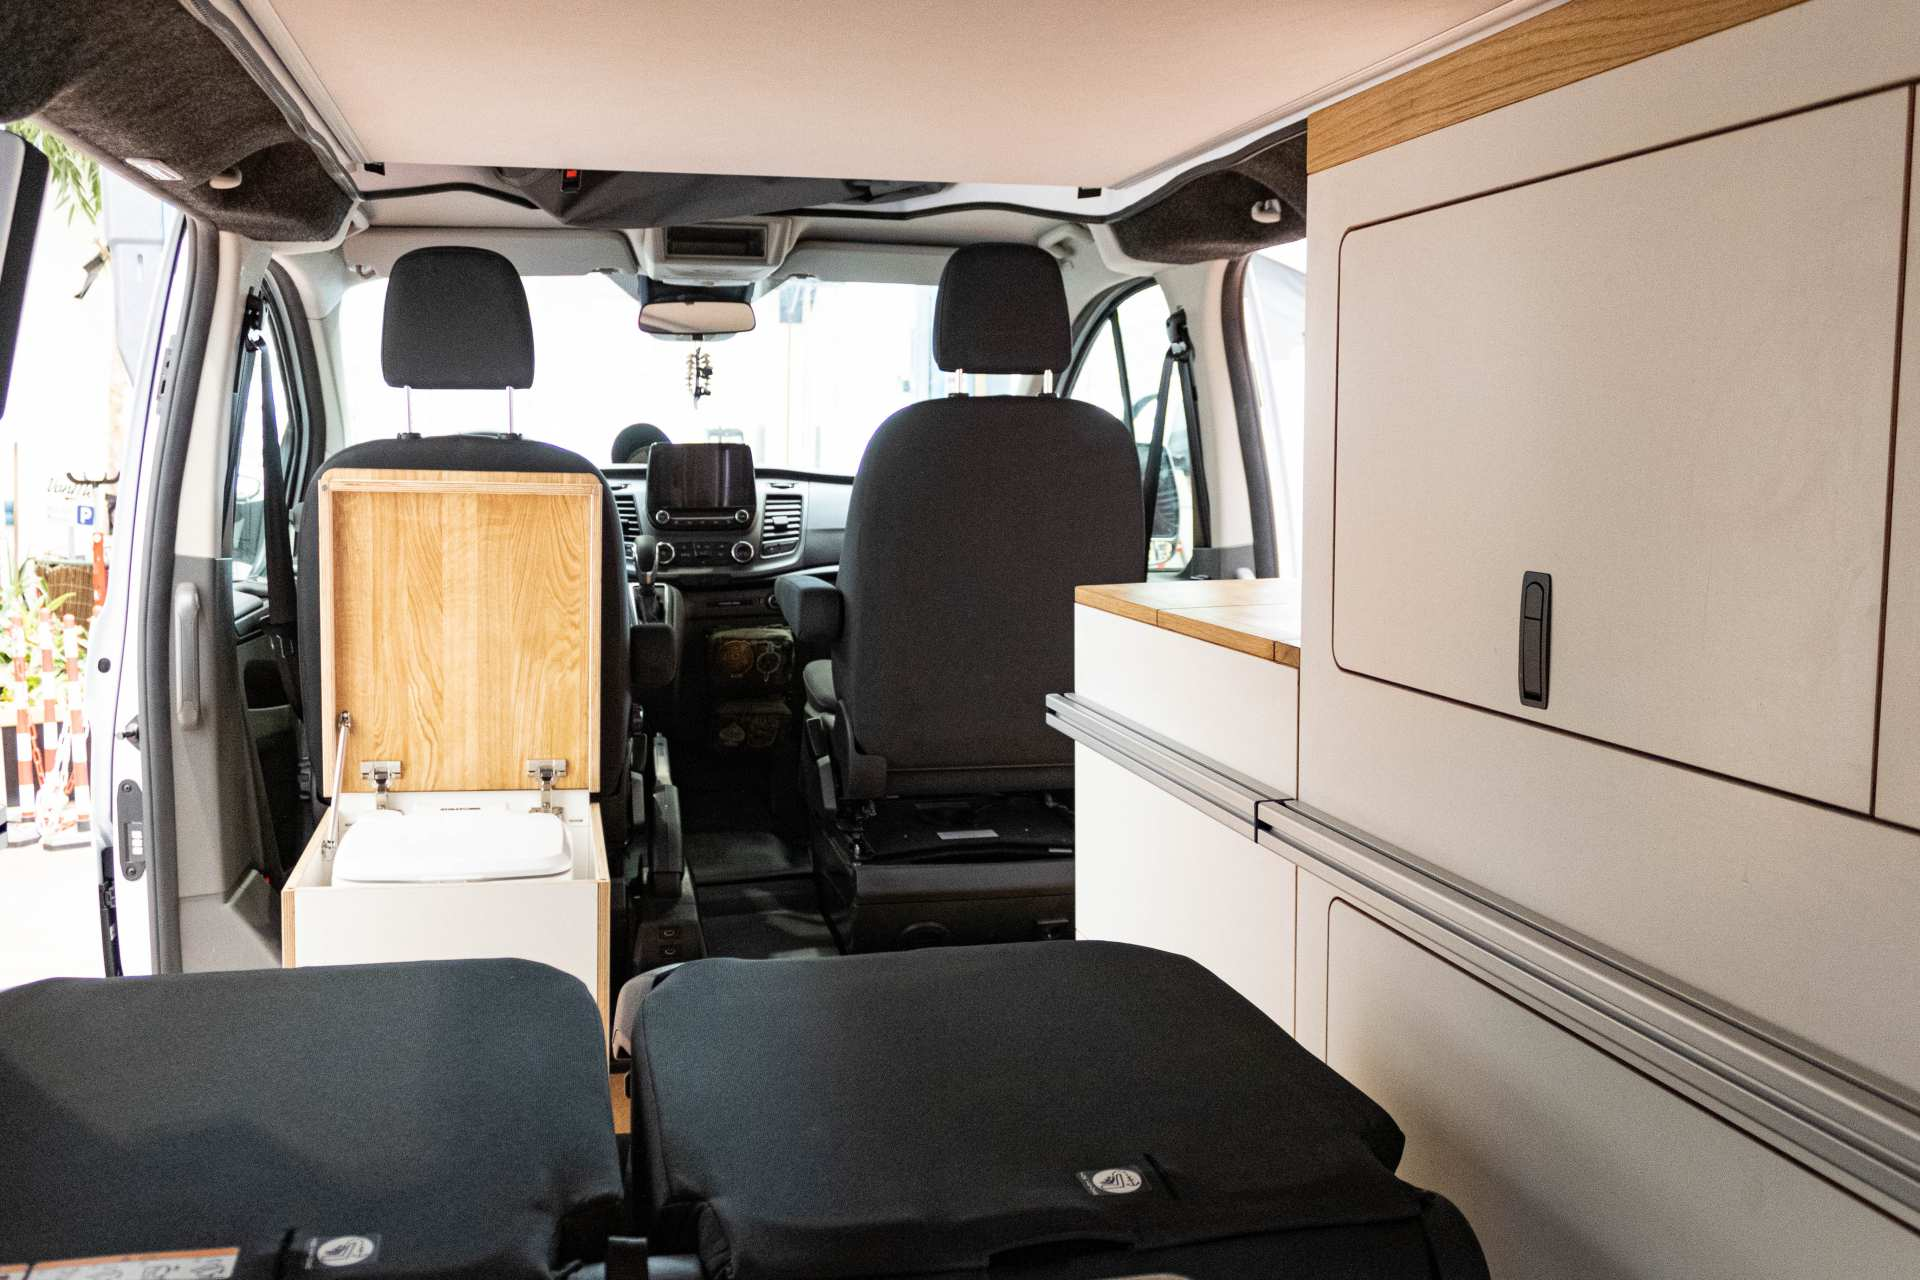 Individualausbau: EXPEDITION Ford Transit Custom, langer Radstand - 18